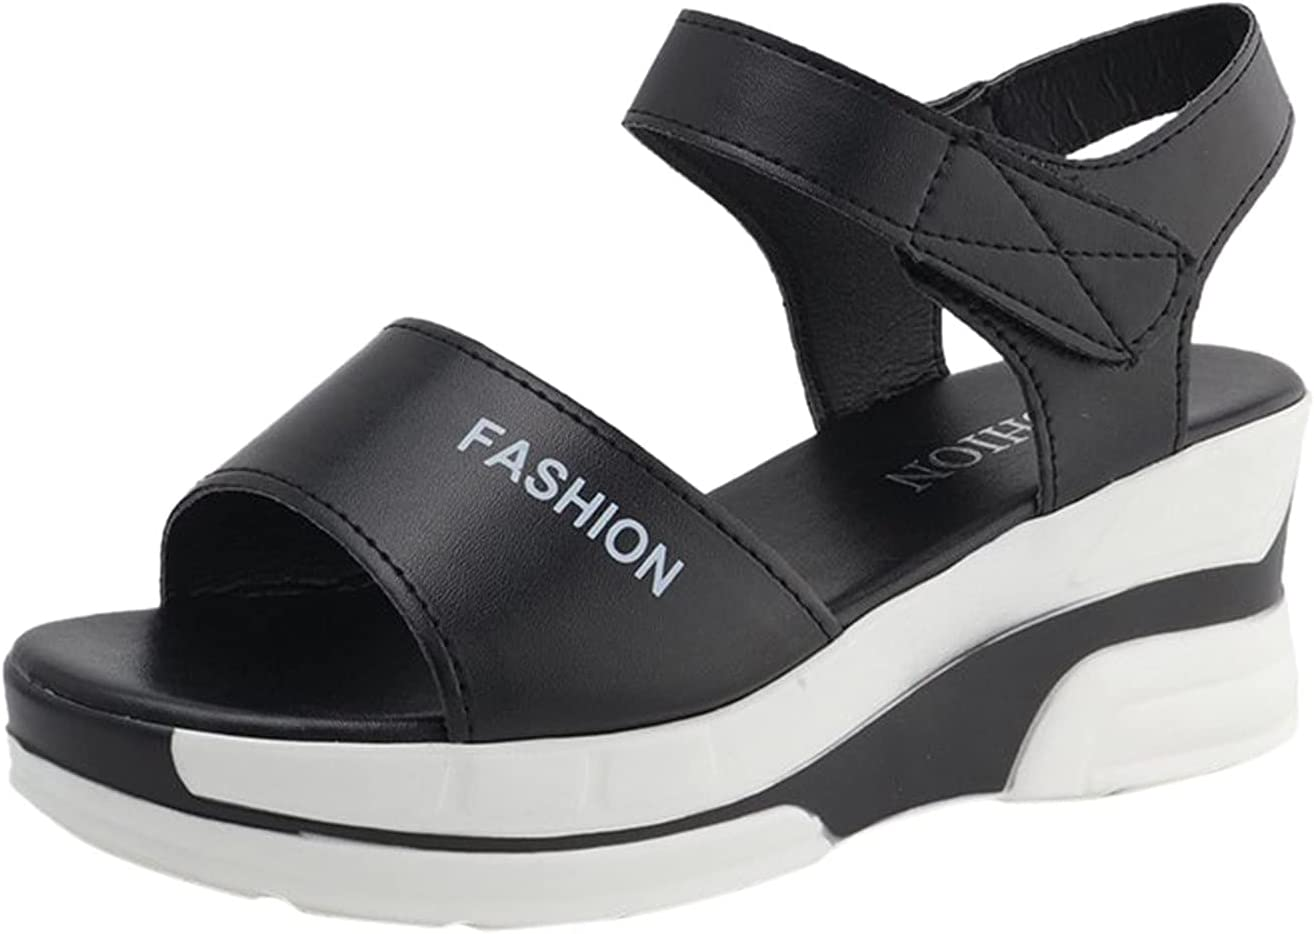 PLENTOP Summer Special price for a limited time Platform Open Toe Fish Mouth Ranking TOP6 Thick Sandals Bottom